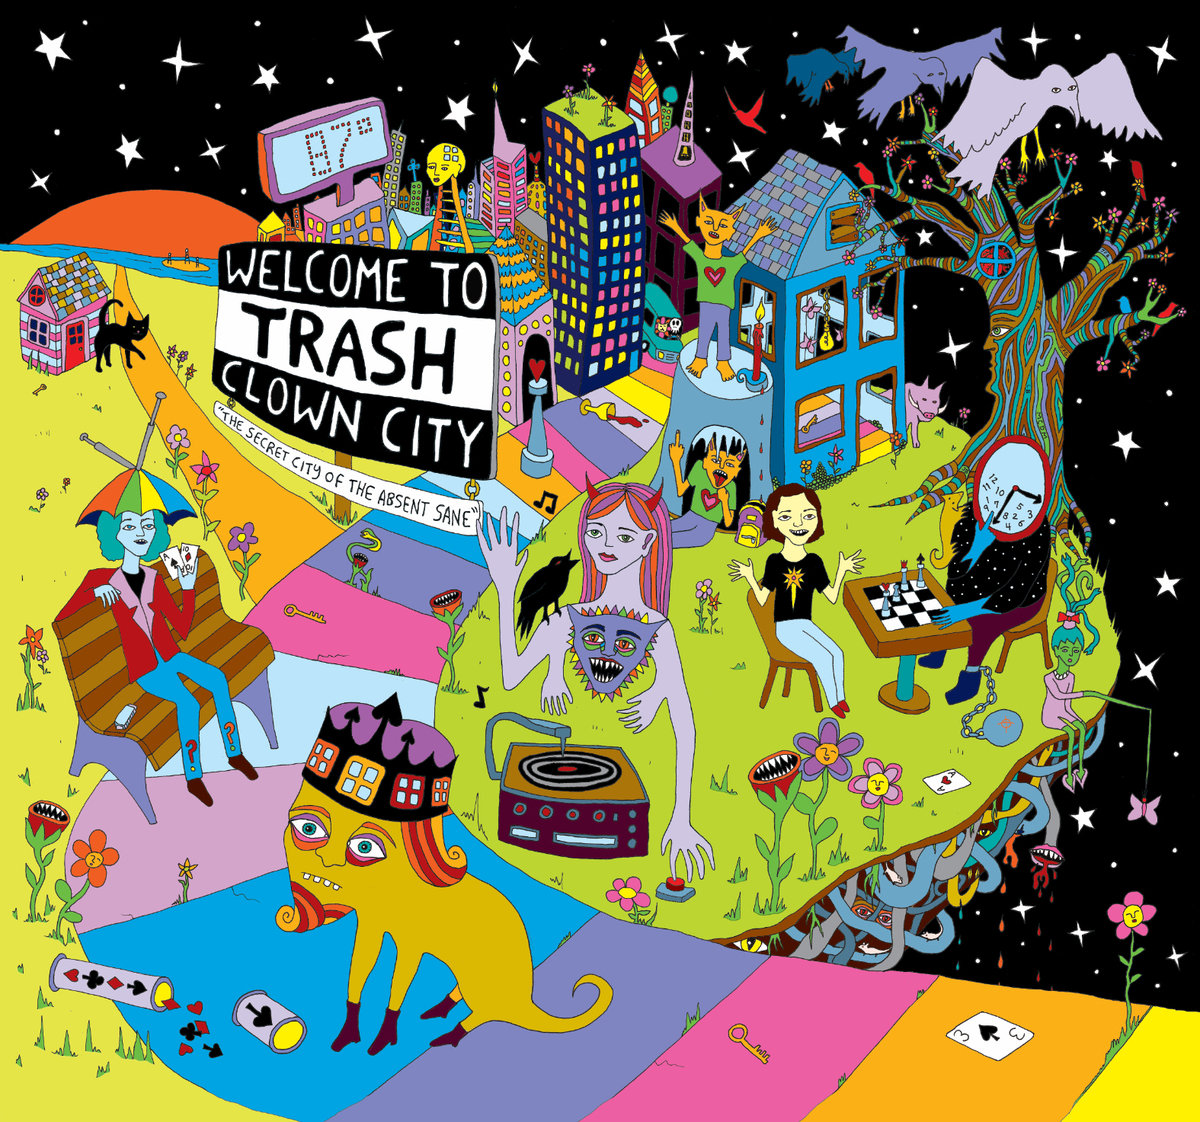 Welcome To Trash Clown City.